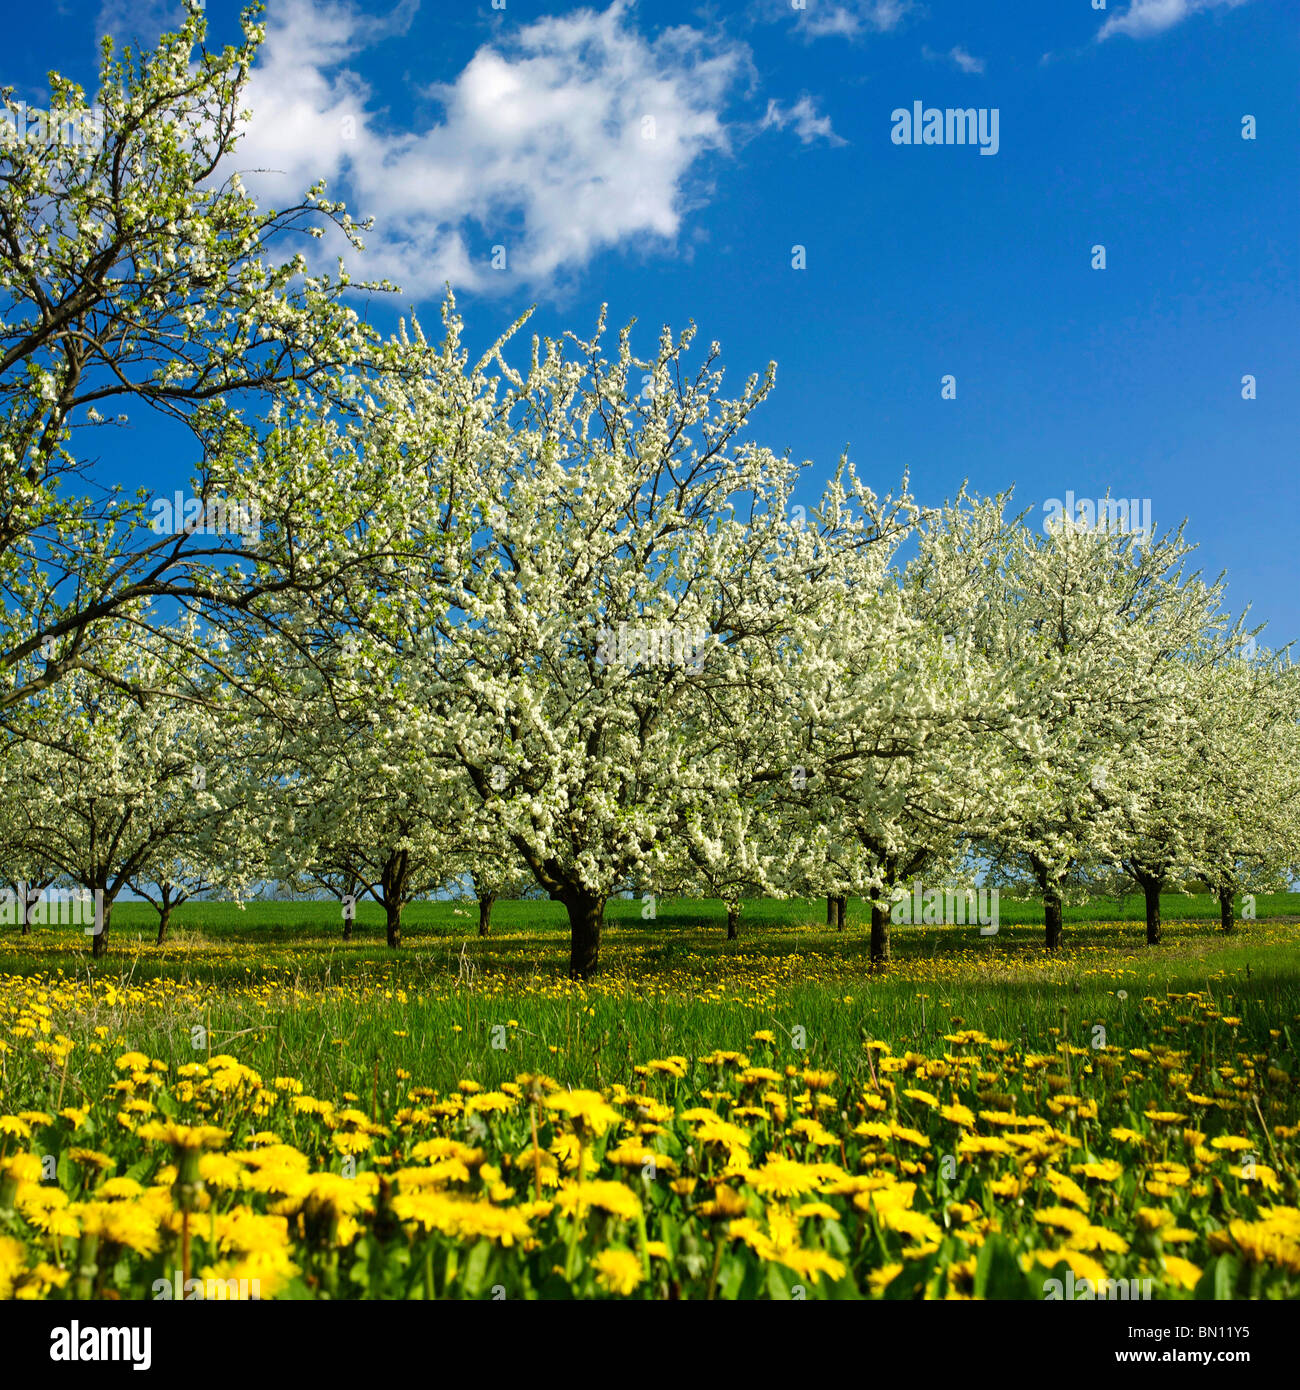 Apple trees with apple blossom.in an orchard - Stock Image